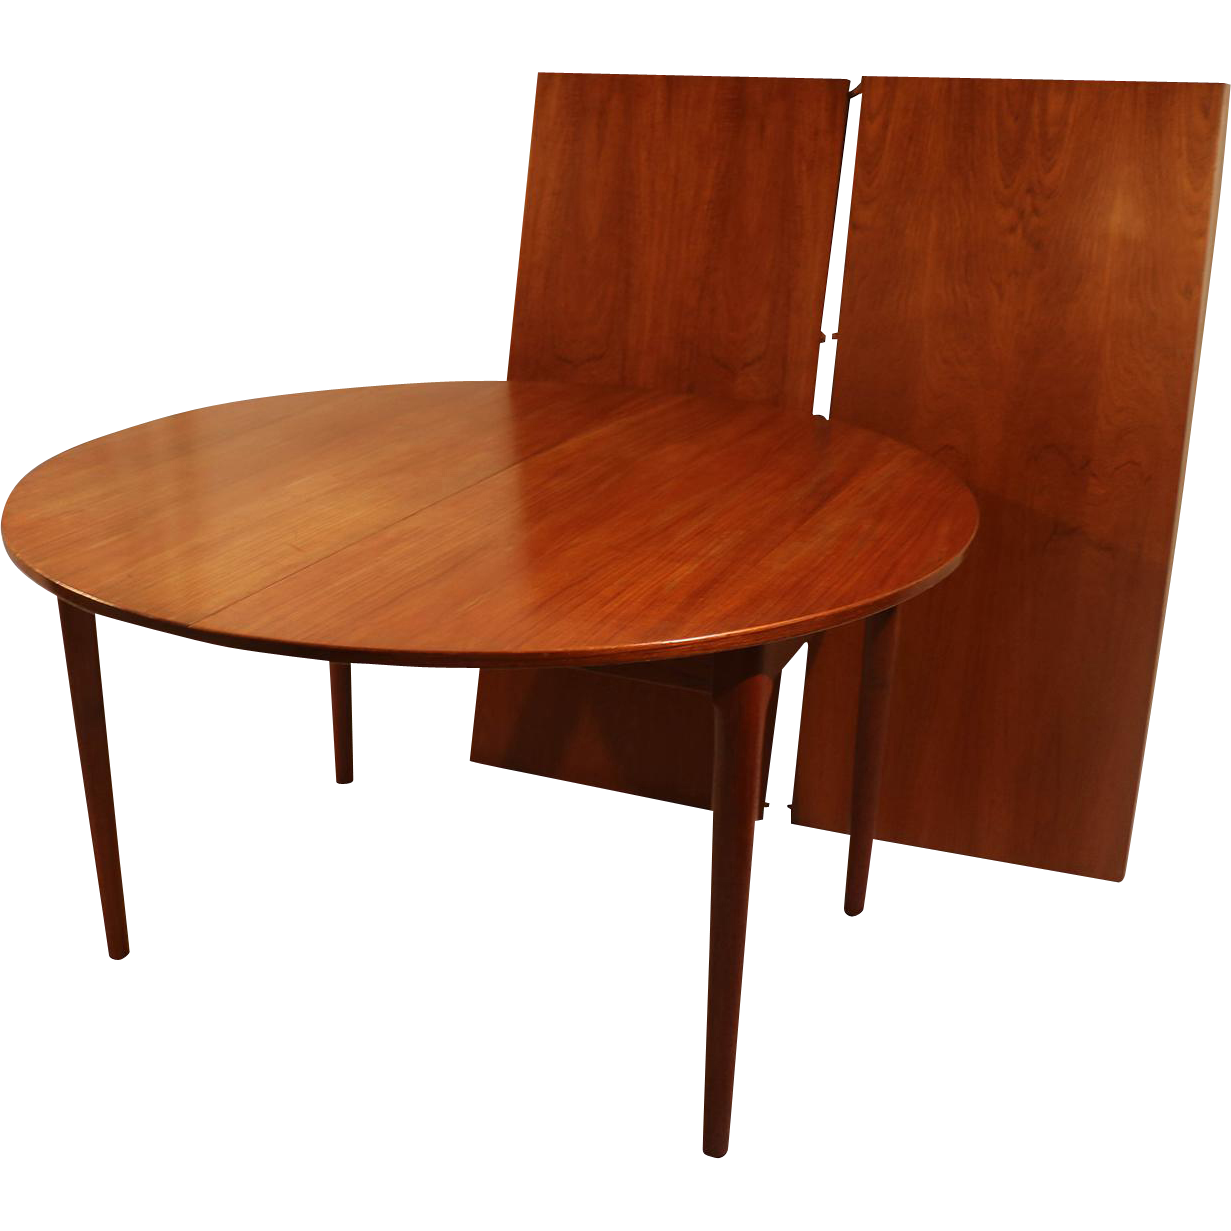 DomesticSale174 expandable dining table : DMTE 07271L from domestic.sale size 1231 x 1231 png 571kB